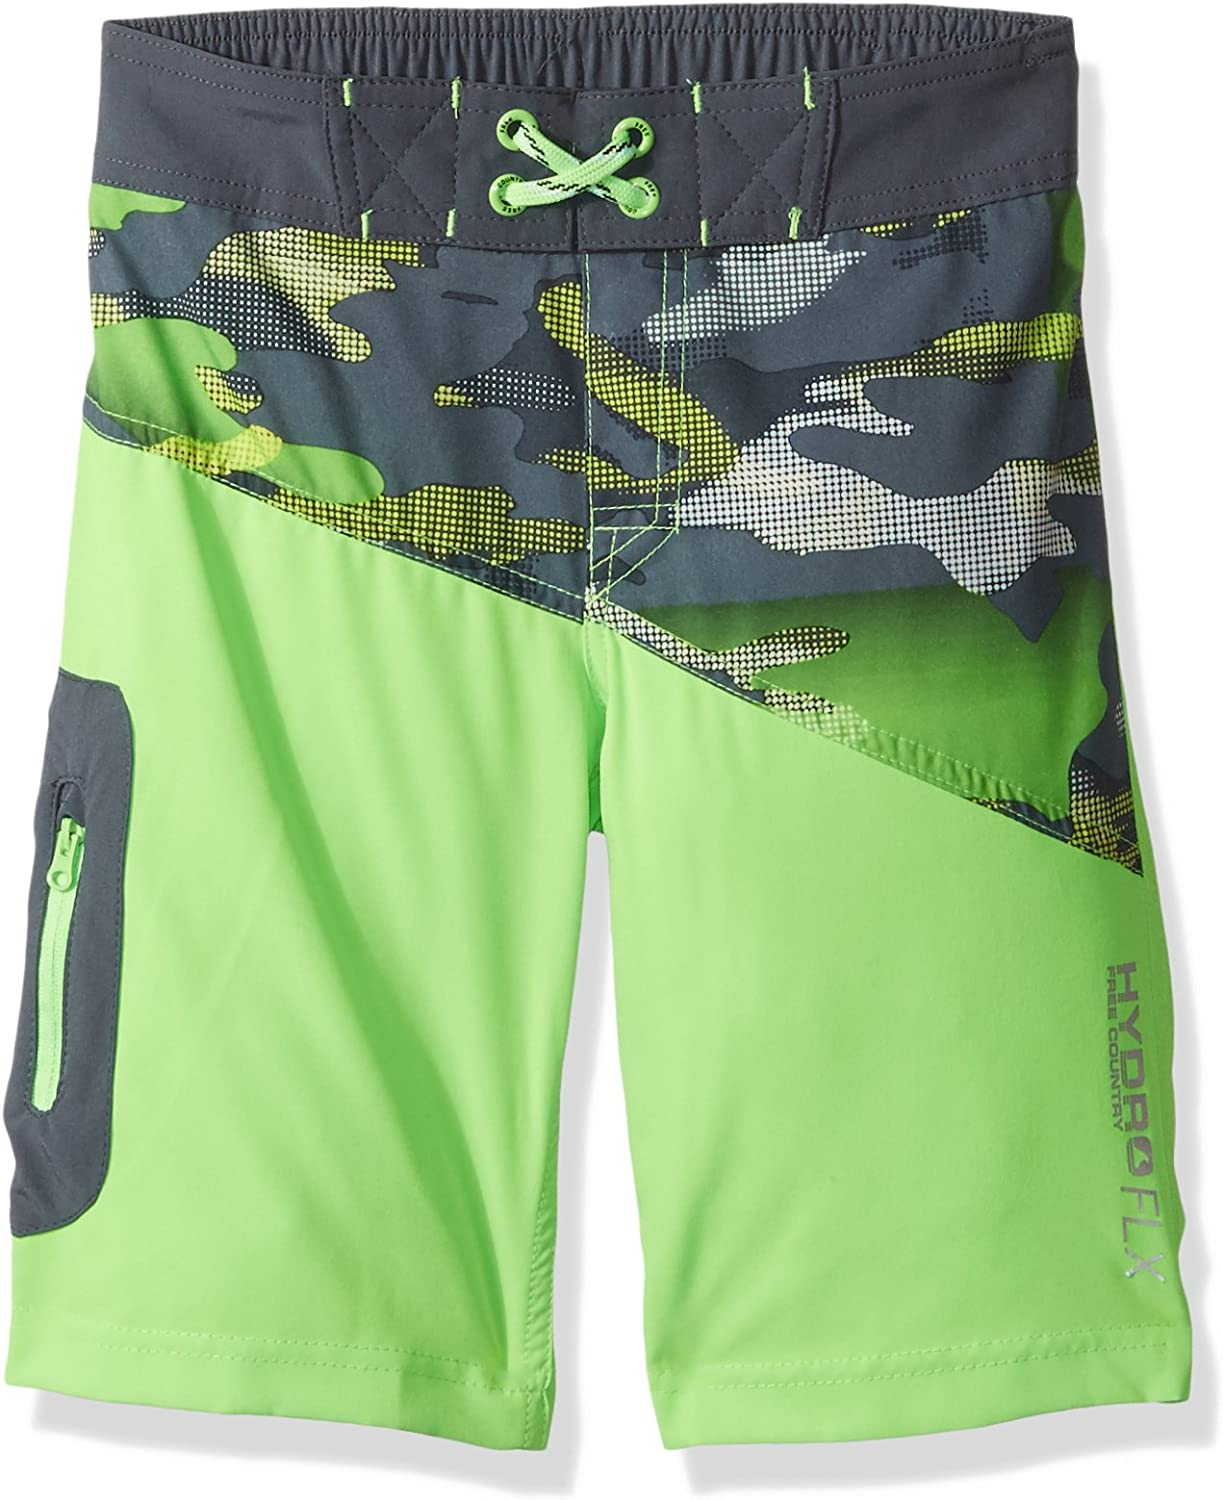 Free Country Boys' Gg Gnarly Camo Stretch Board Short Little